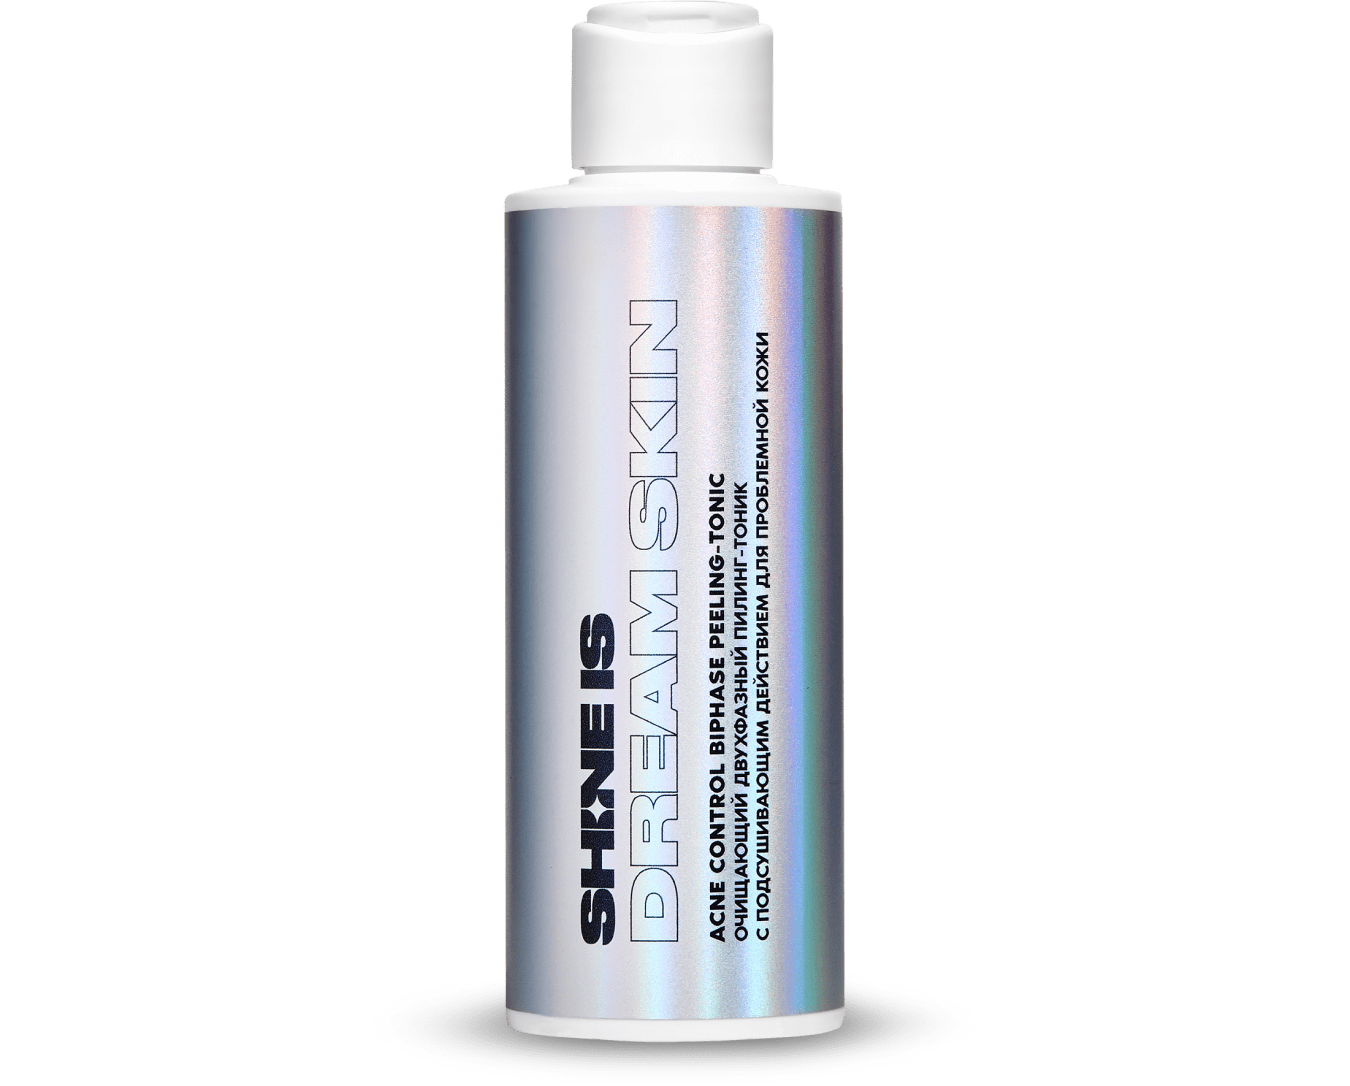 Acne Control BiPhase Peeling-Tonic